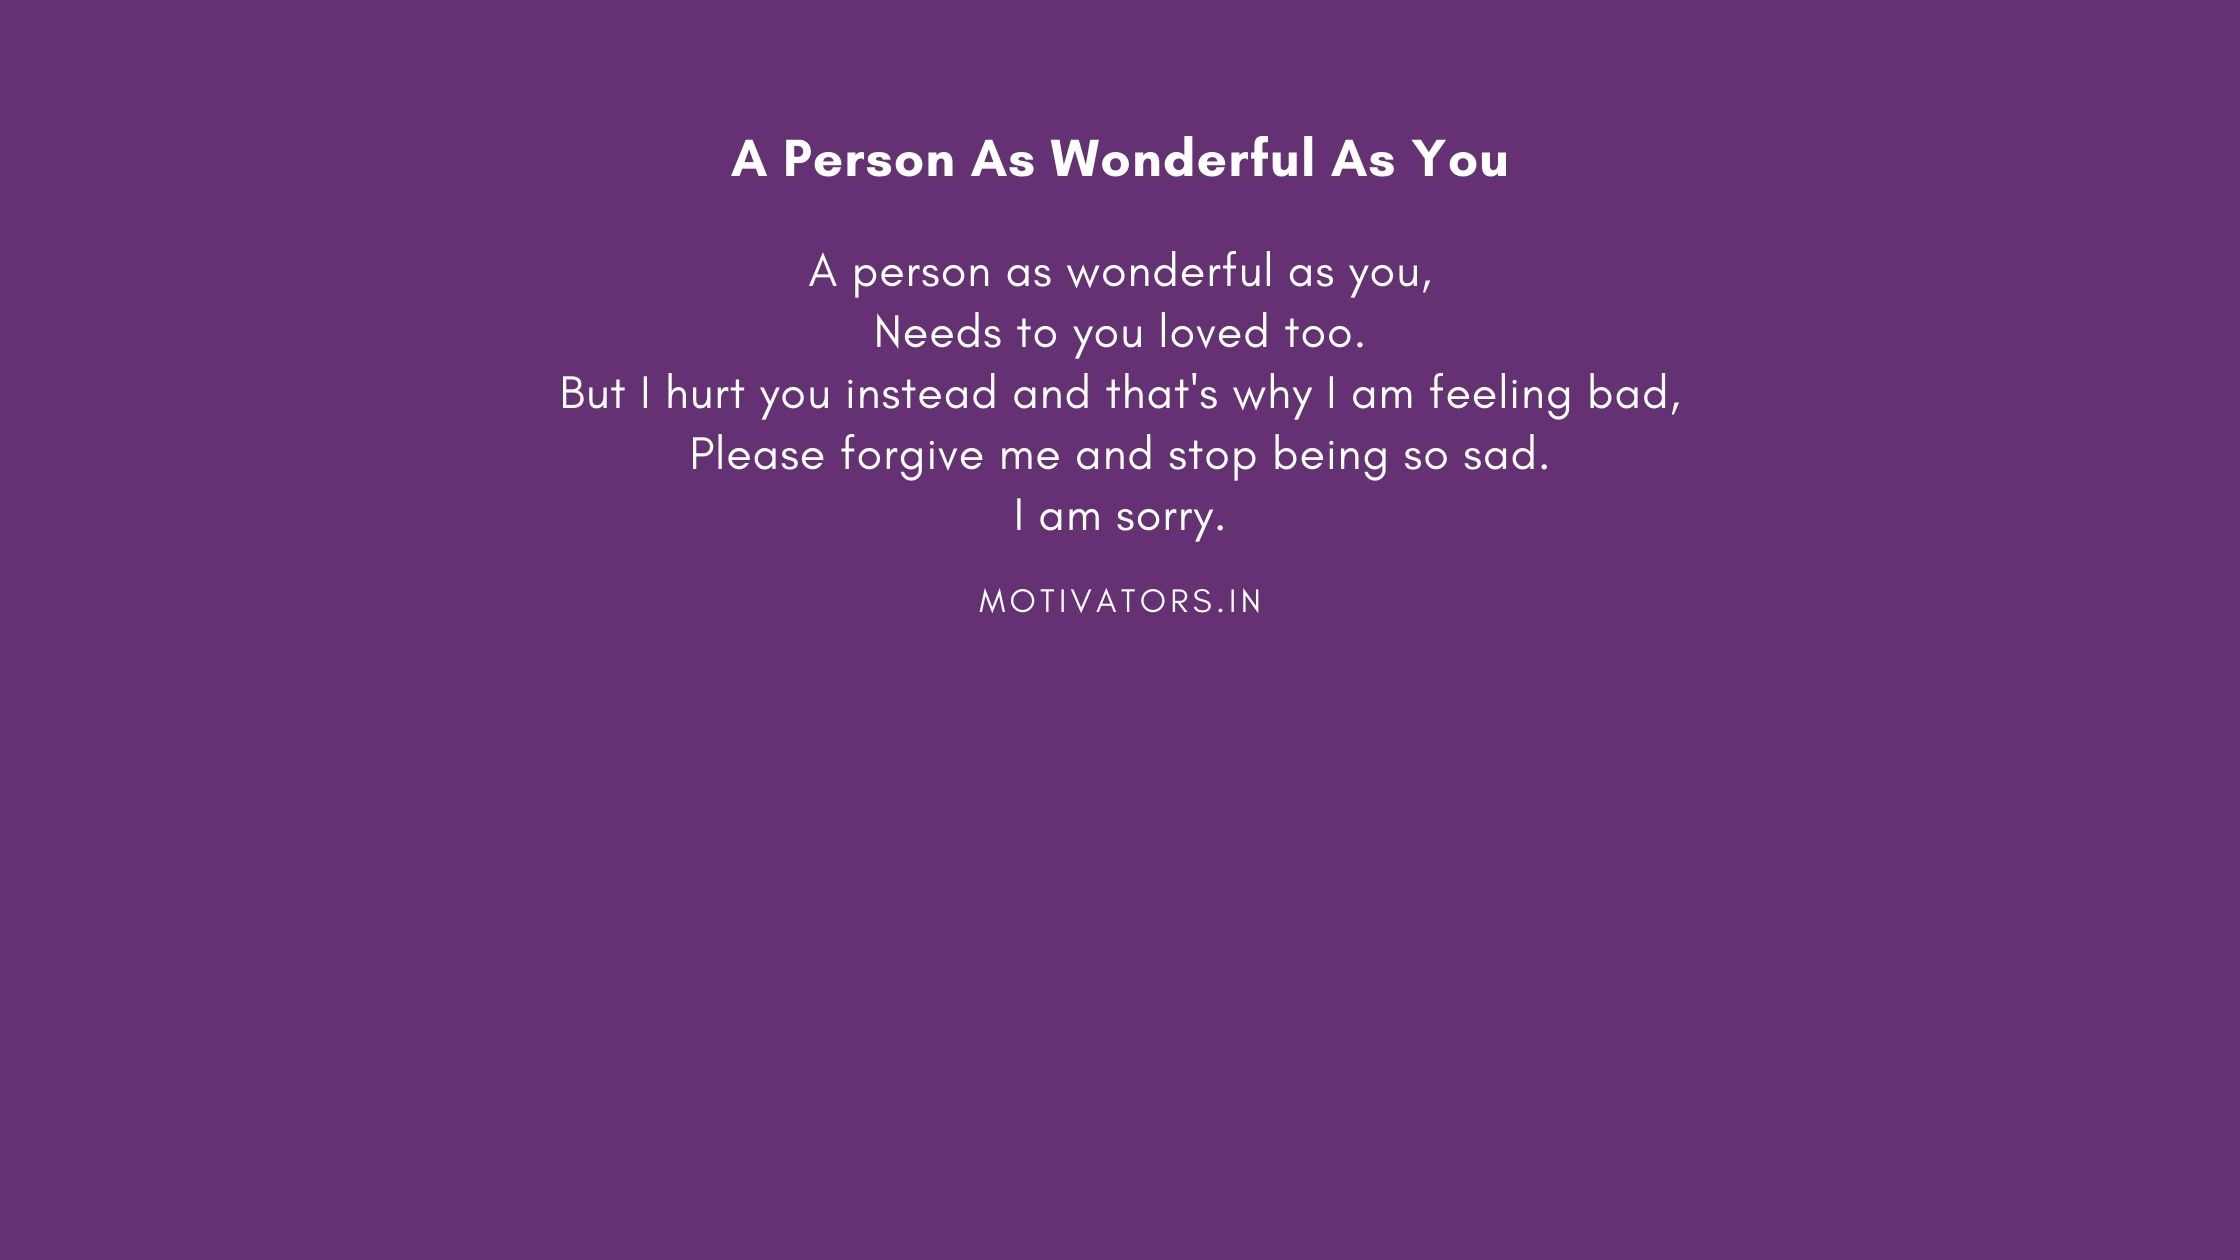 A Person As Wonderful As You